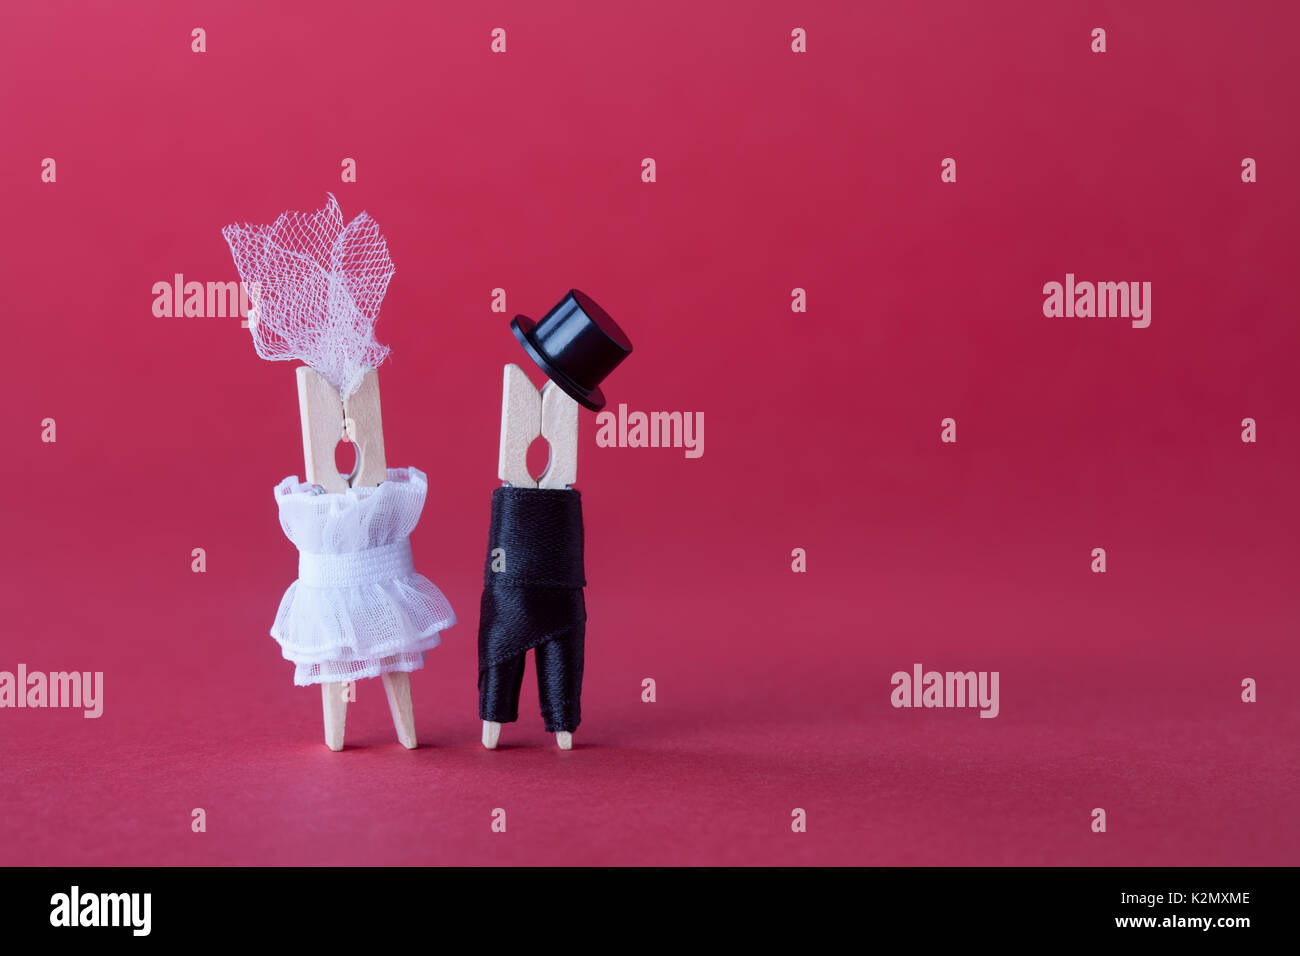 Pink Paper Hat Stock Photos & Pink Paper Hat Stock Images - Alamy